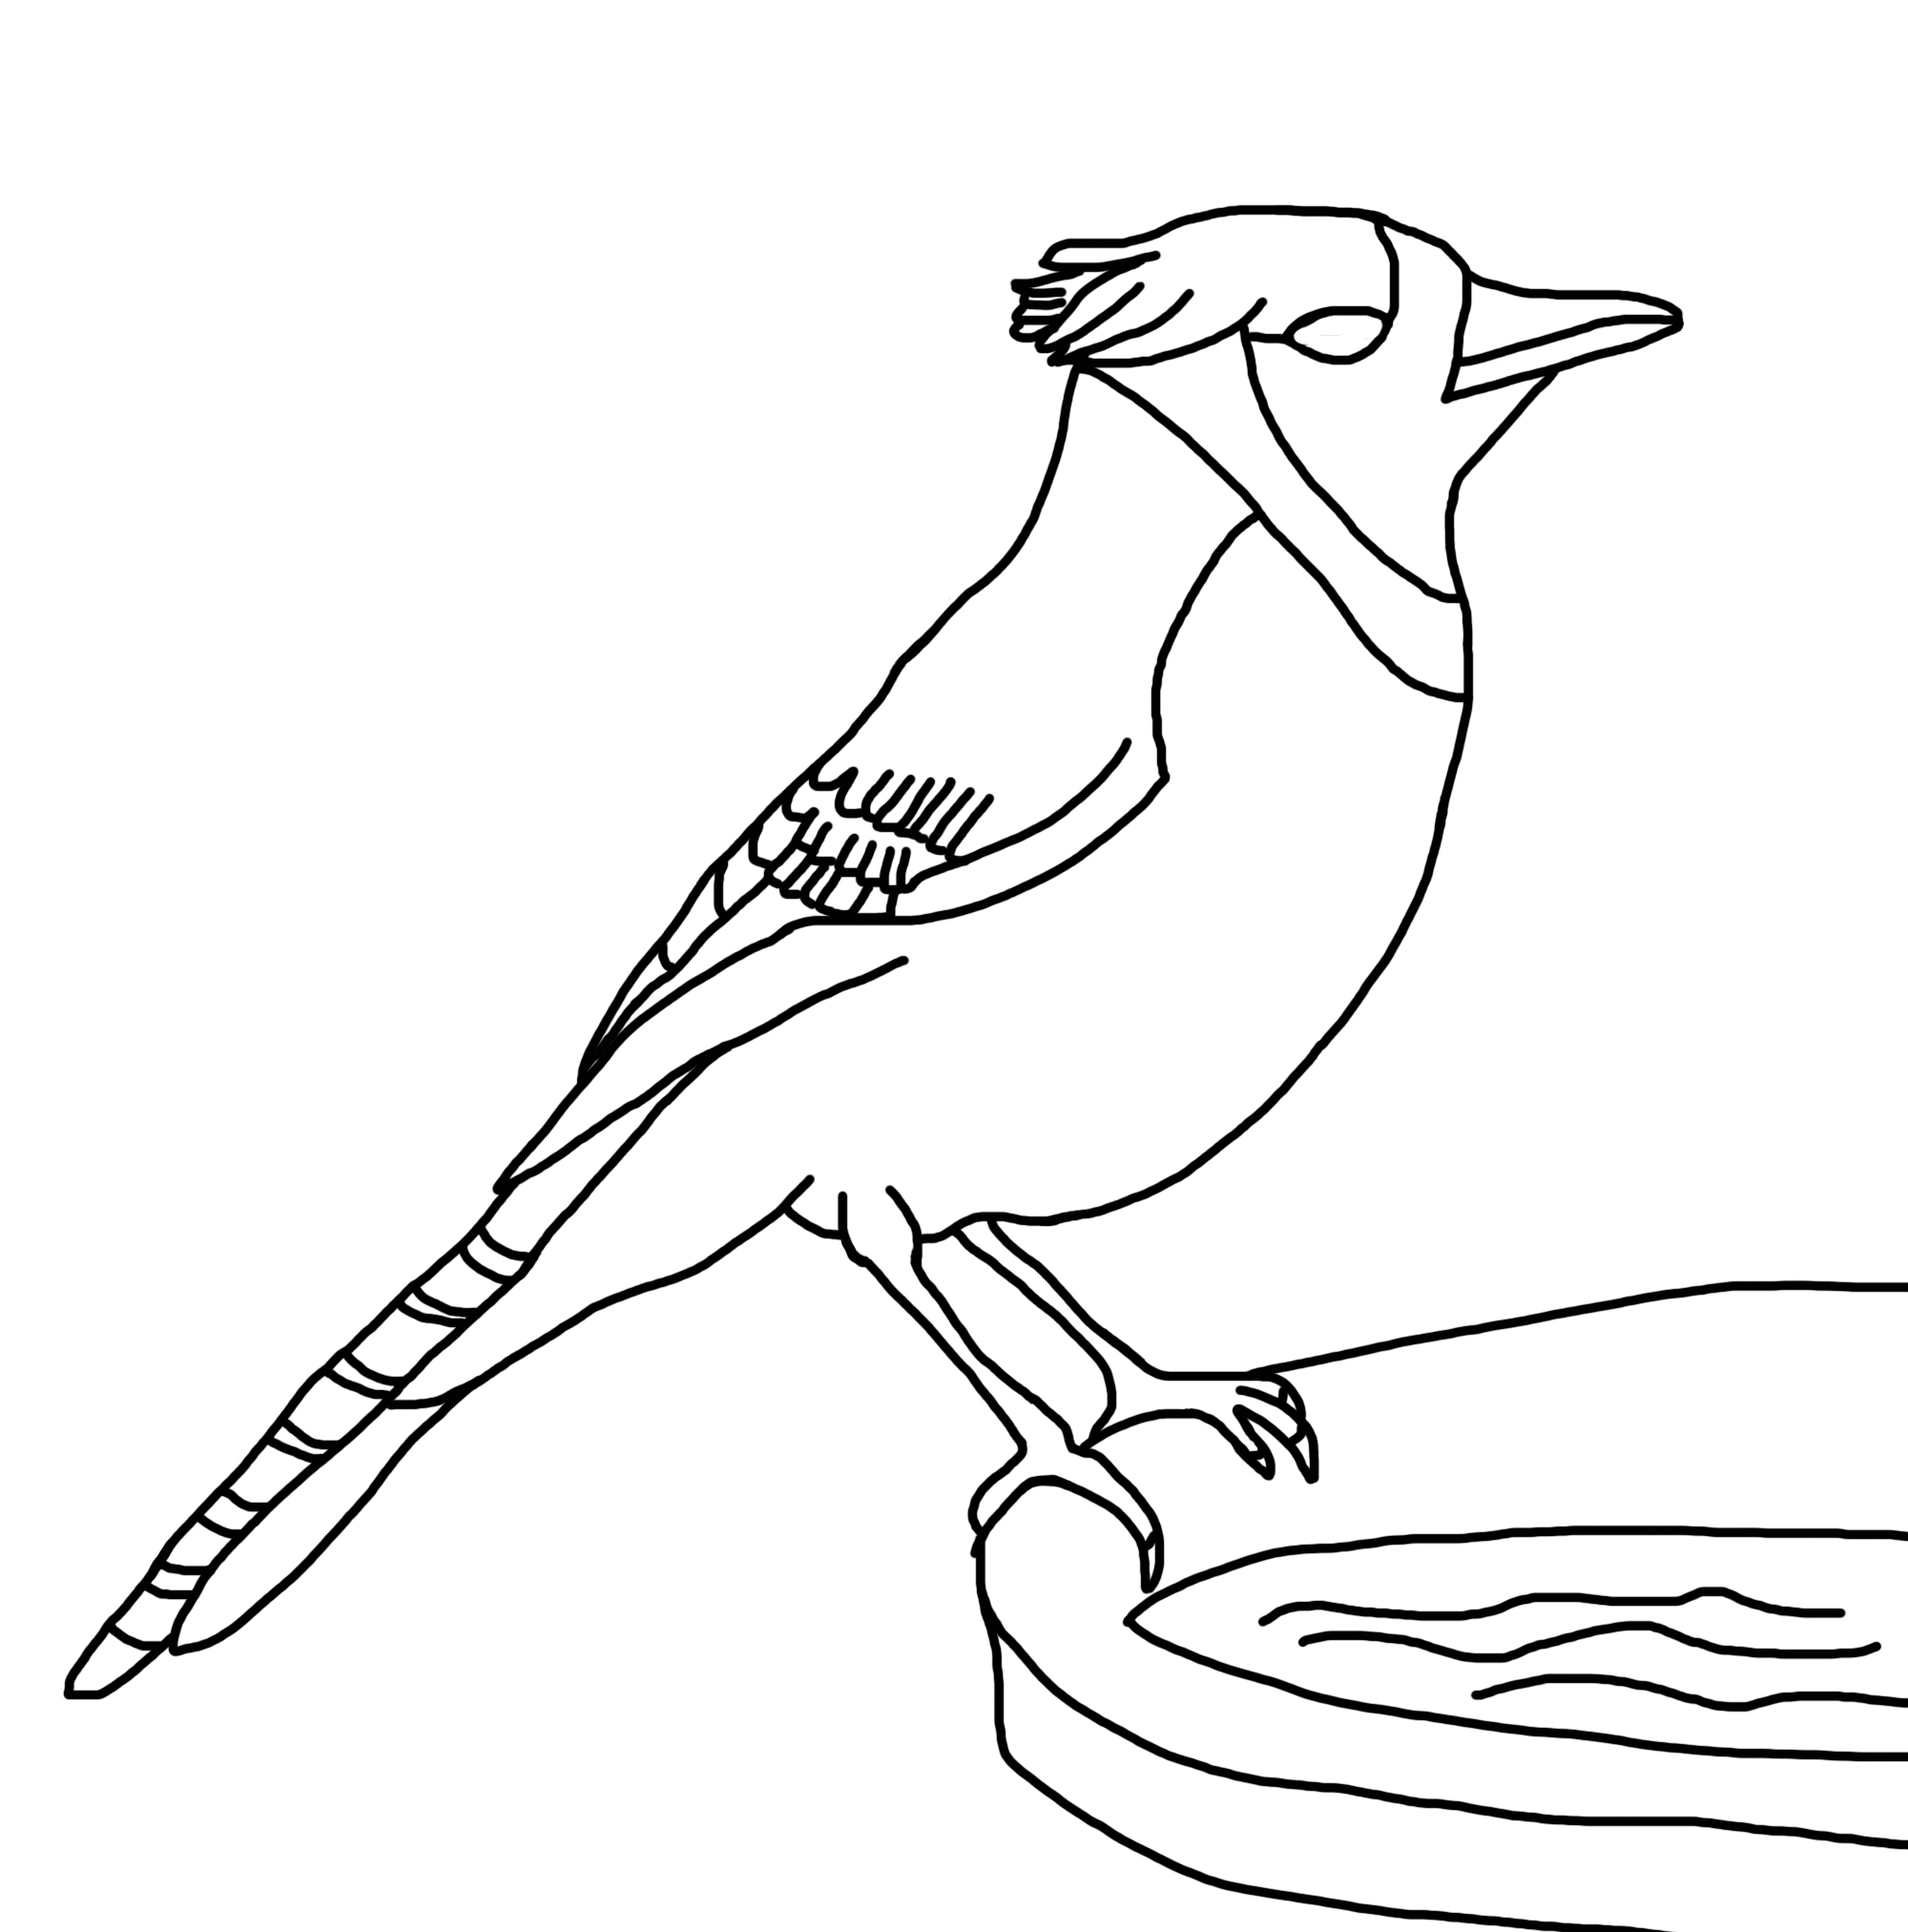 blue jay coloring page - coloring pages